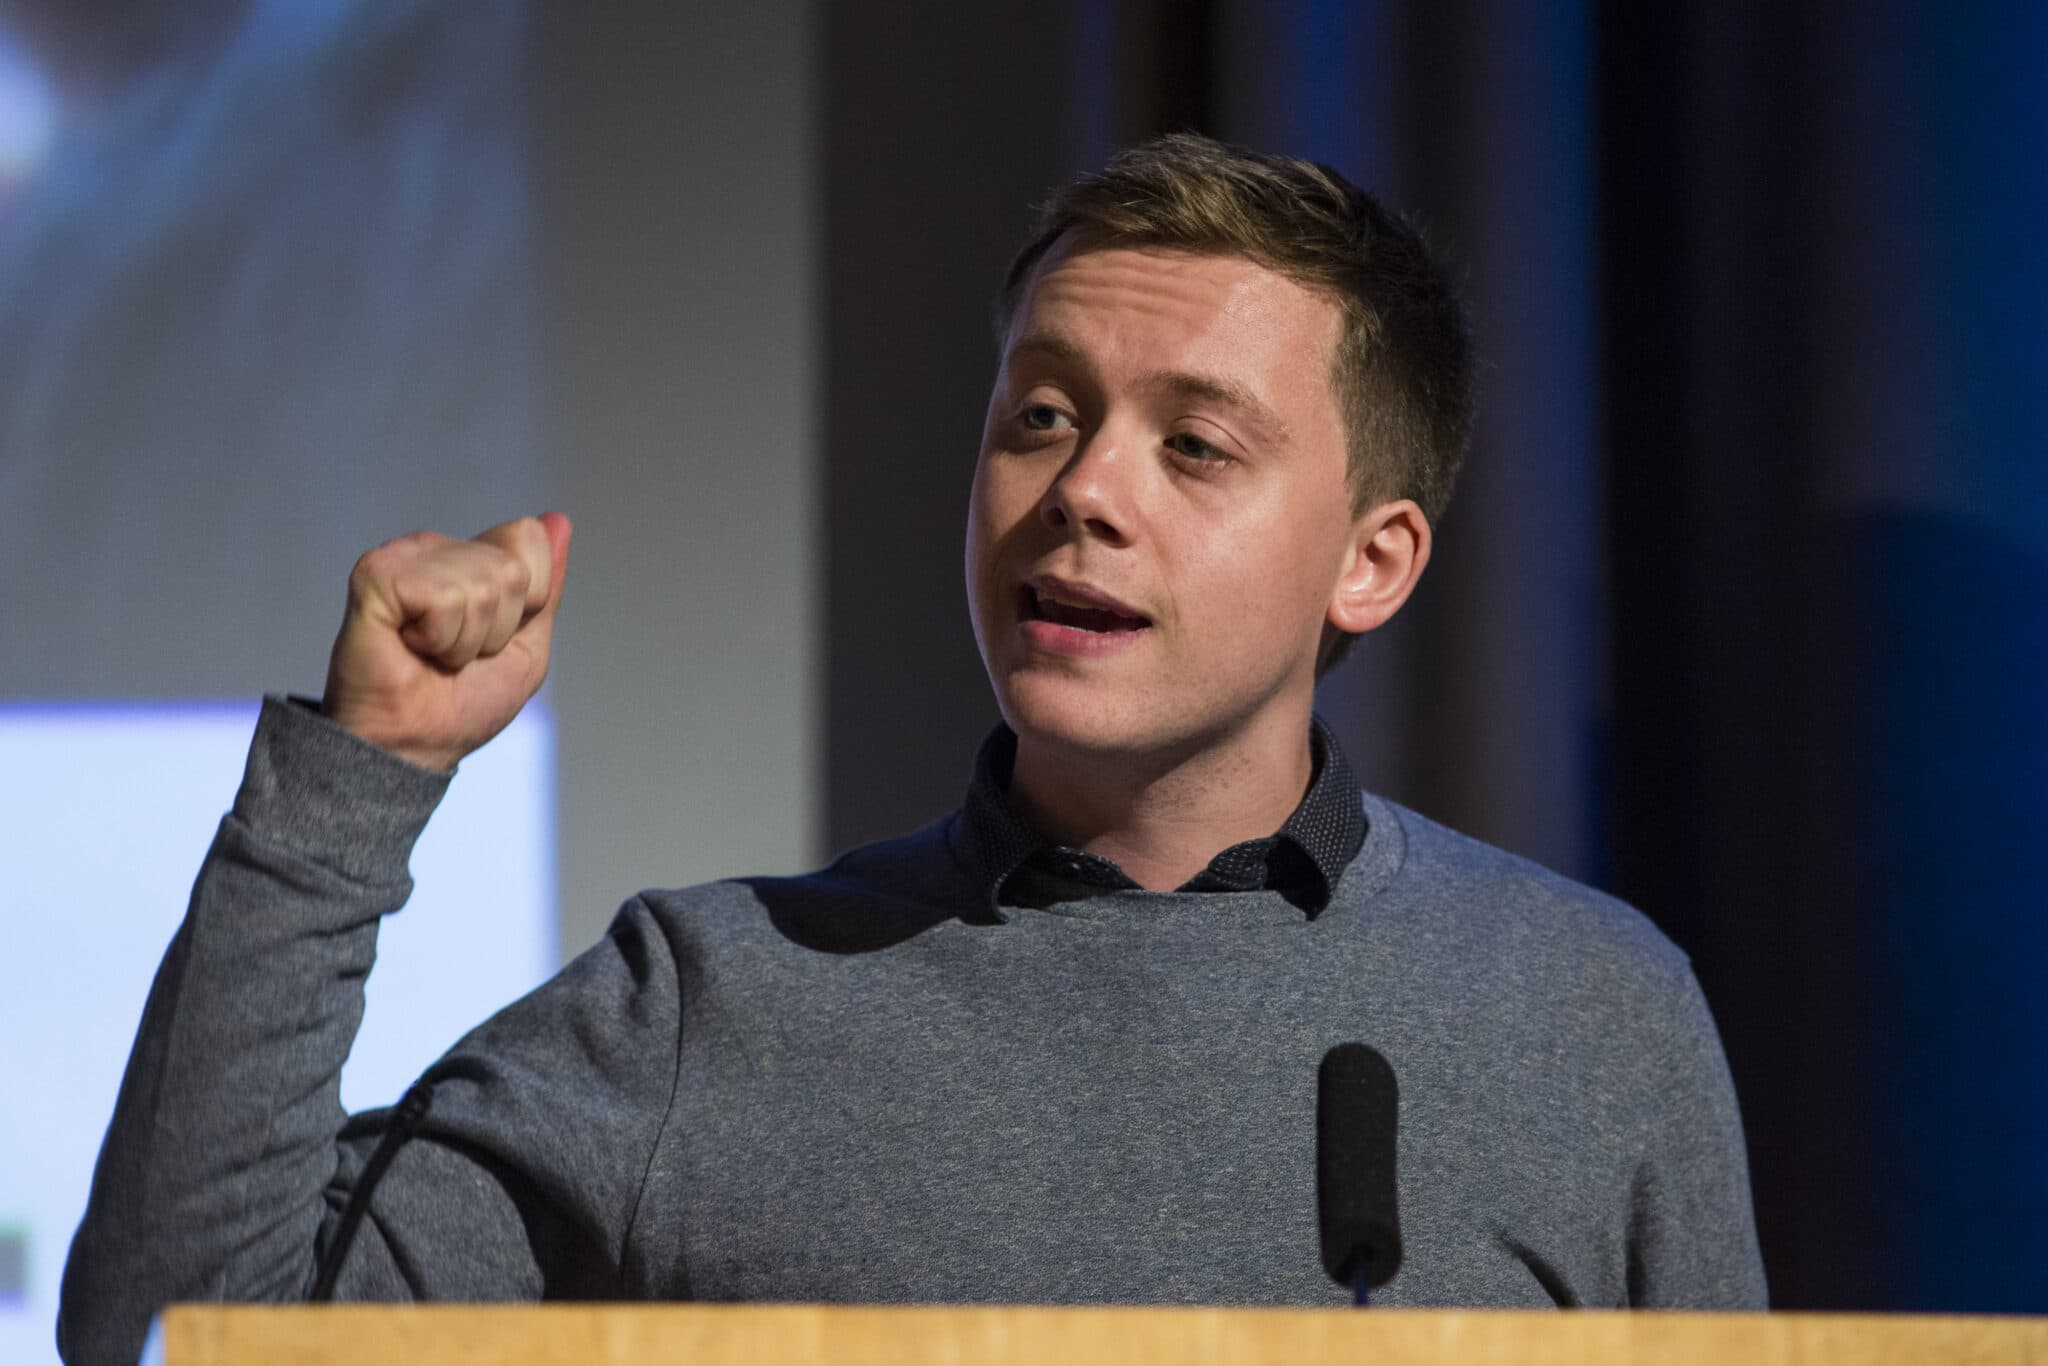 Owen Jones speaks in front of a podium in a grey jumper over a blue shirt